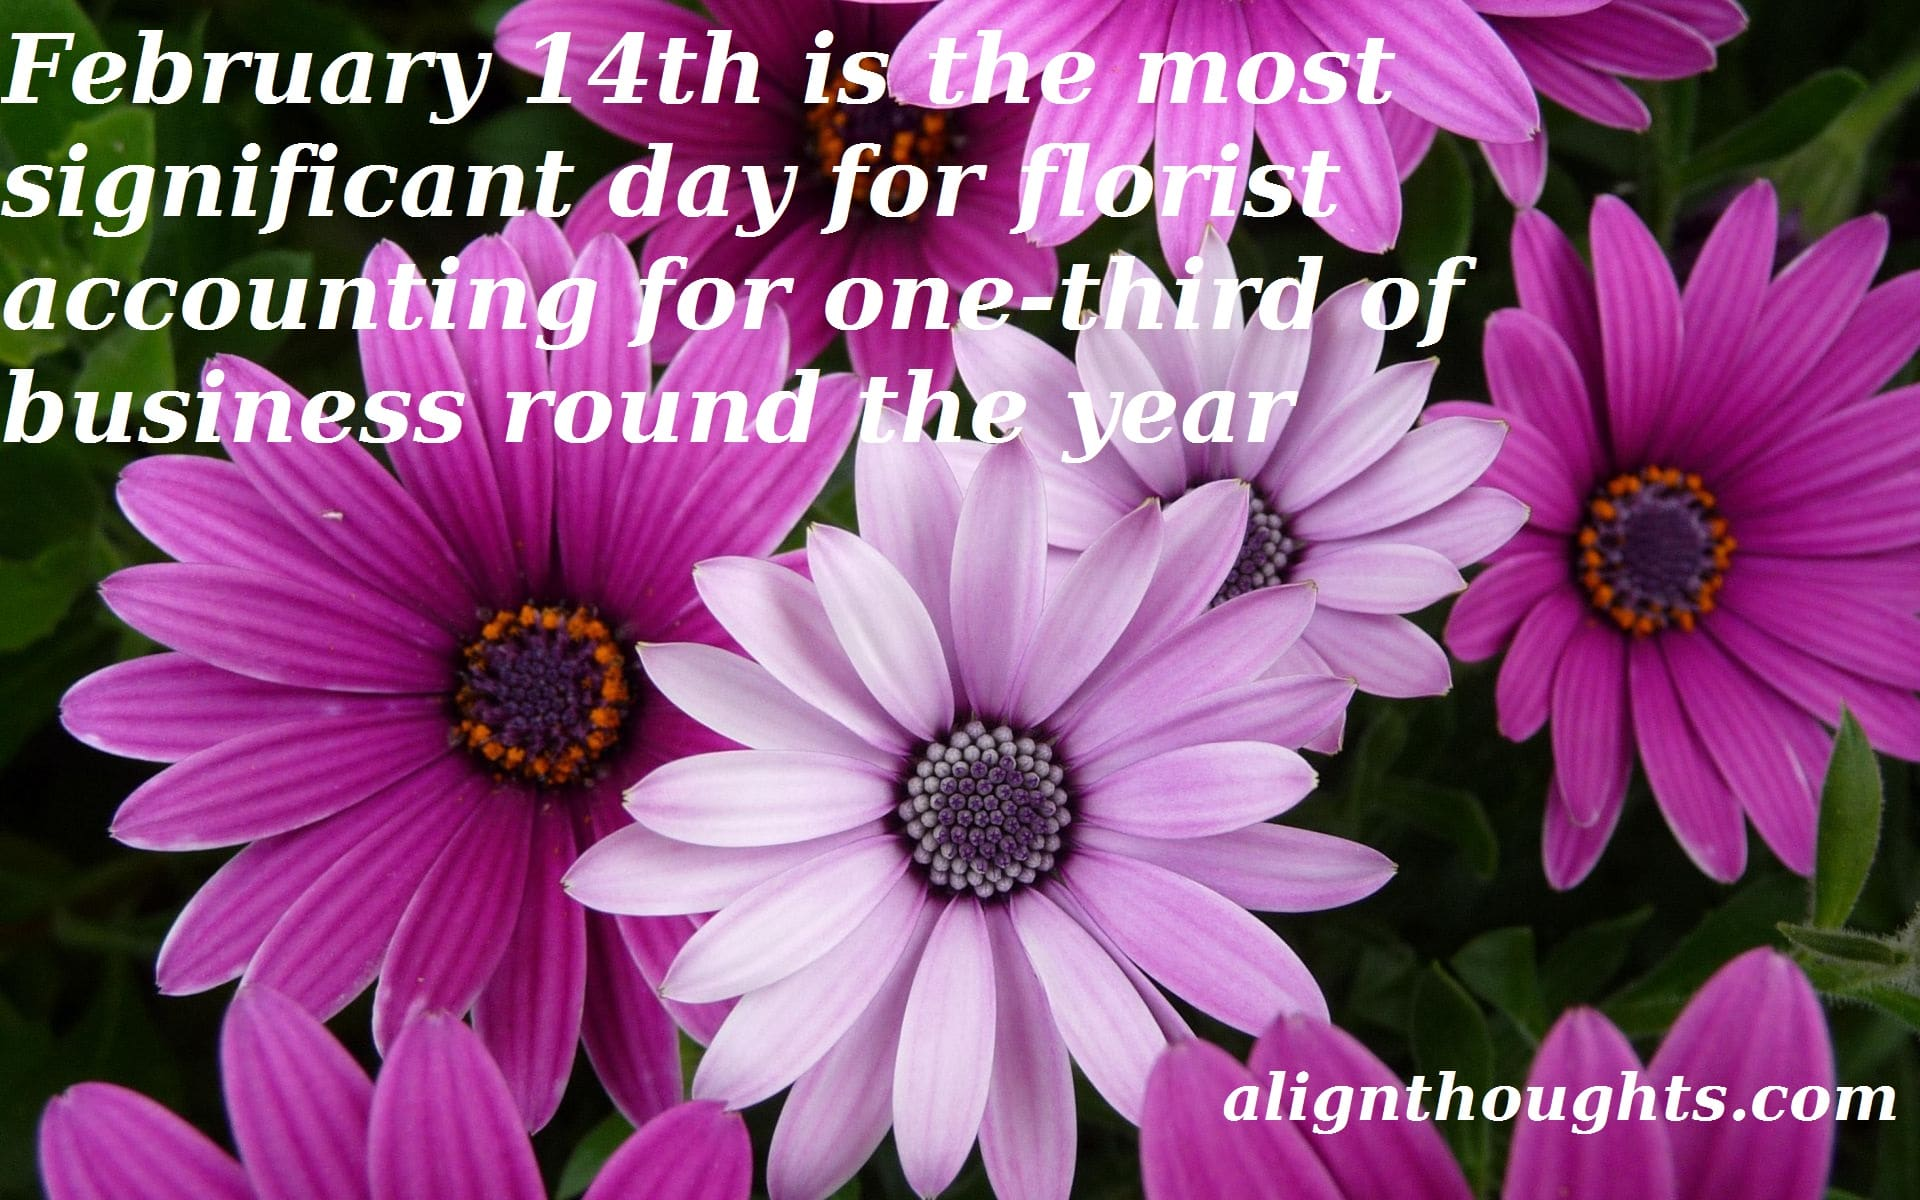 alignthoughts-feb14-florists-images-of-flowers-and-butterflies